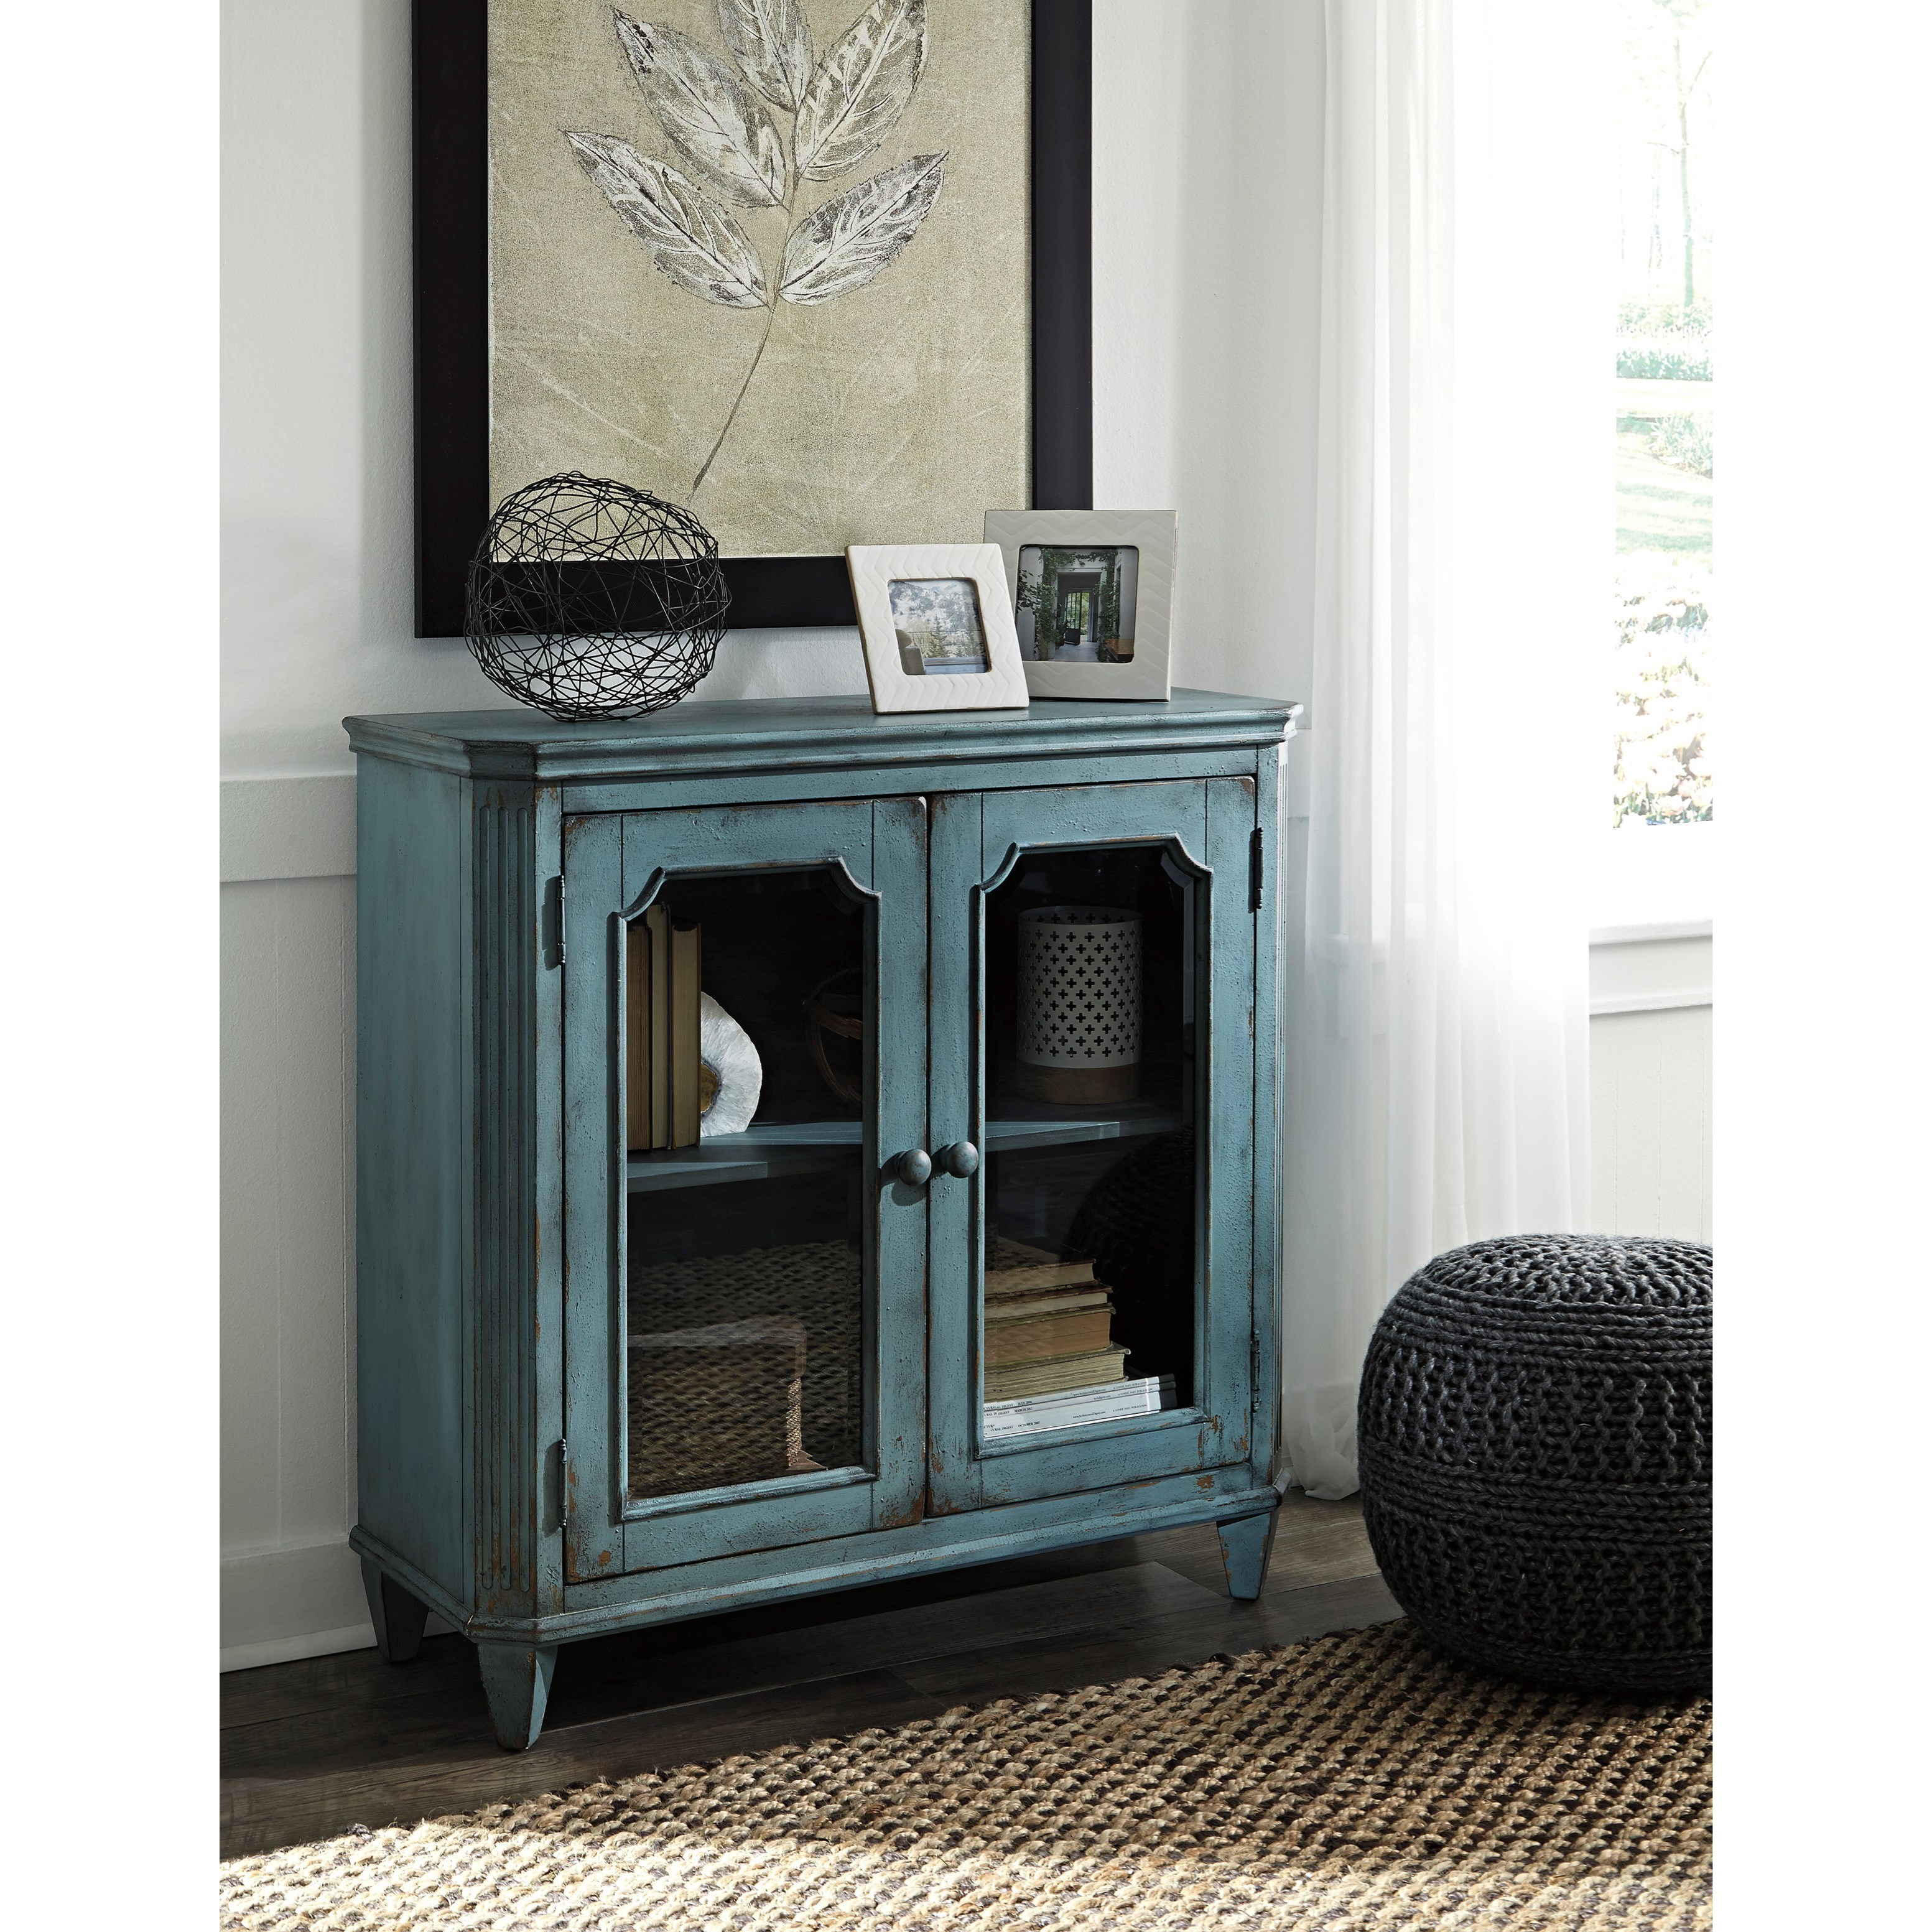 French Provincial Style Glass Door Accent Cabinet in Antique Teal Finish  sc 1 st  Wolf Furniture & French Provincial Style Glass Door Accent Cabinet in Antique Teal ...